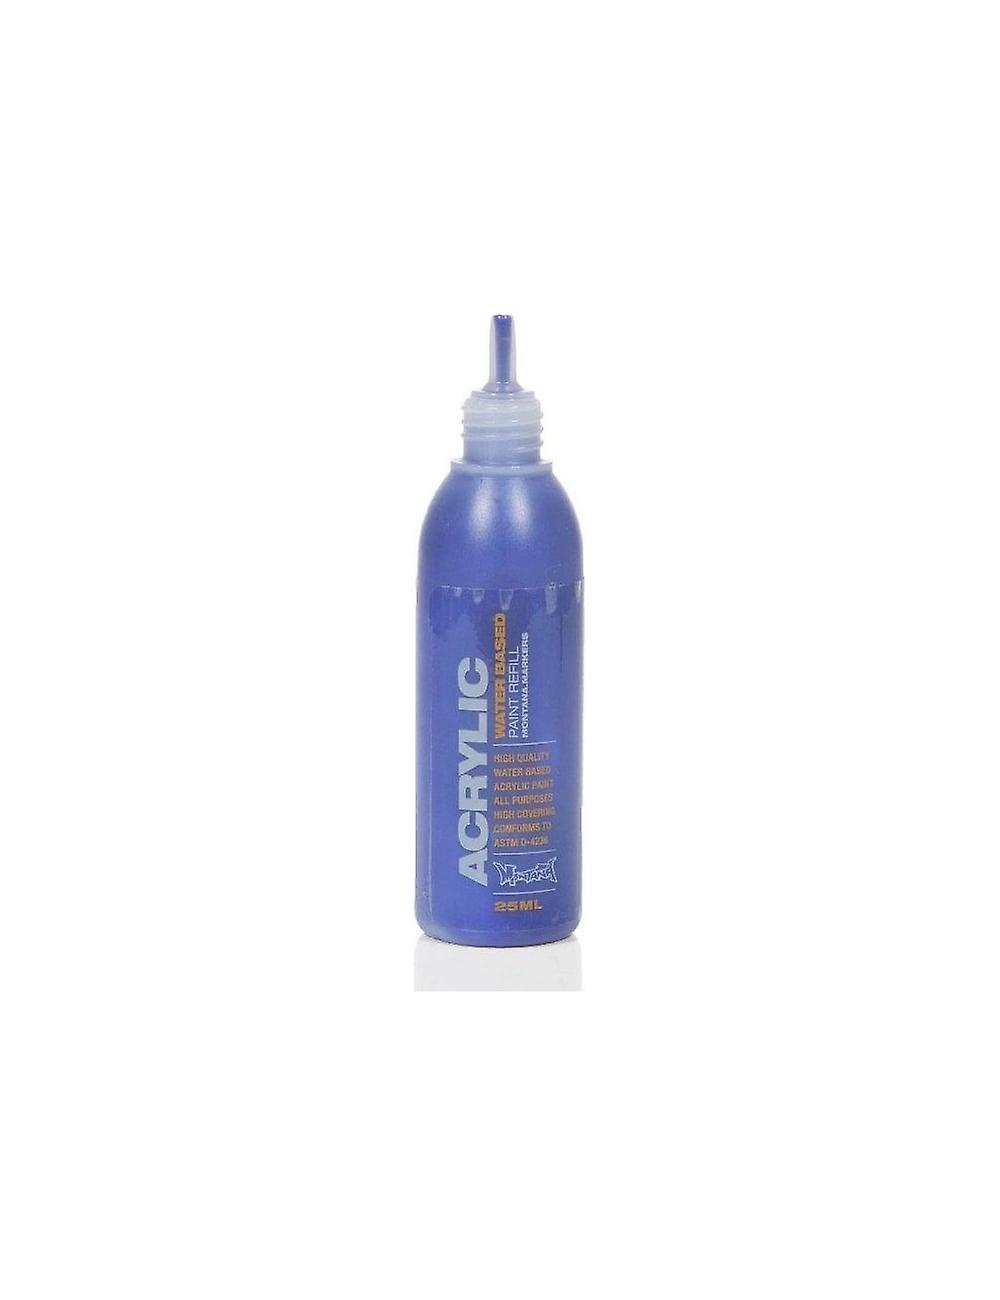 Montana Gold S5020 Shock Blue Dark - 25ml Paint Refill